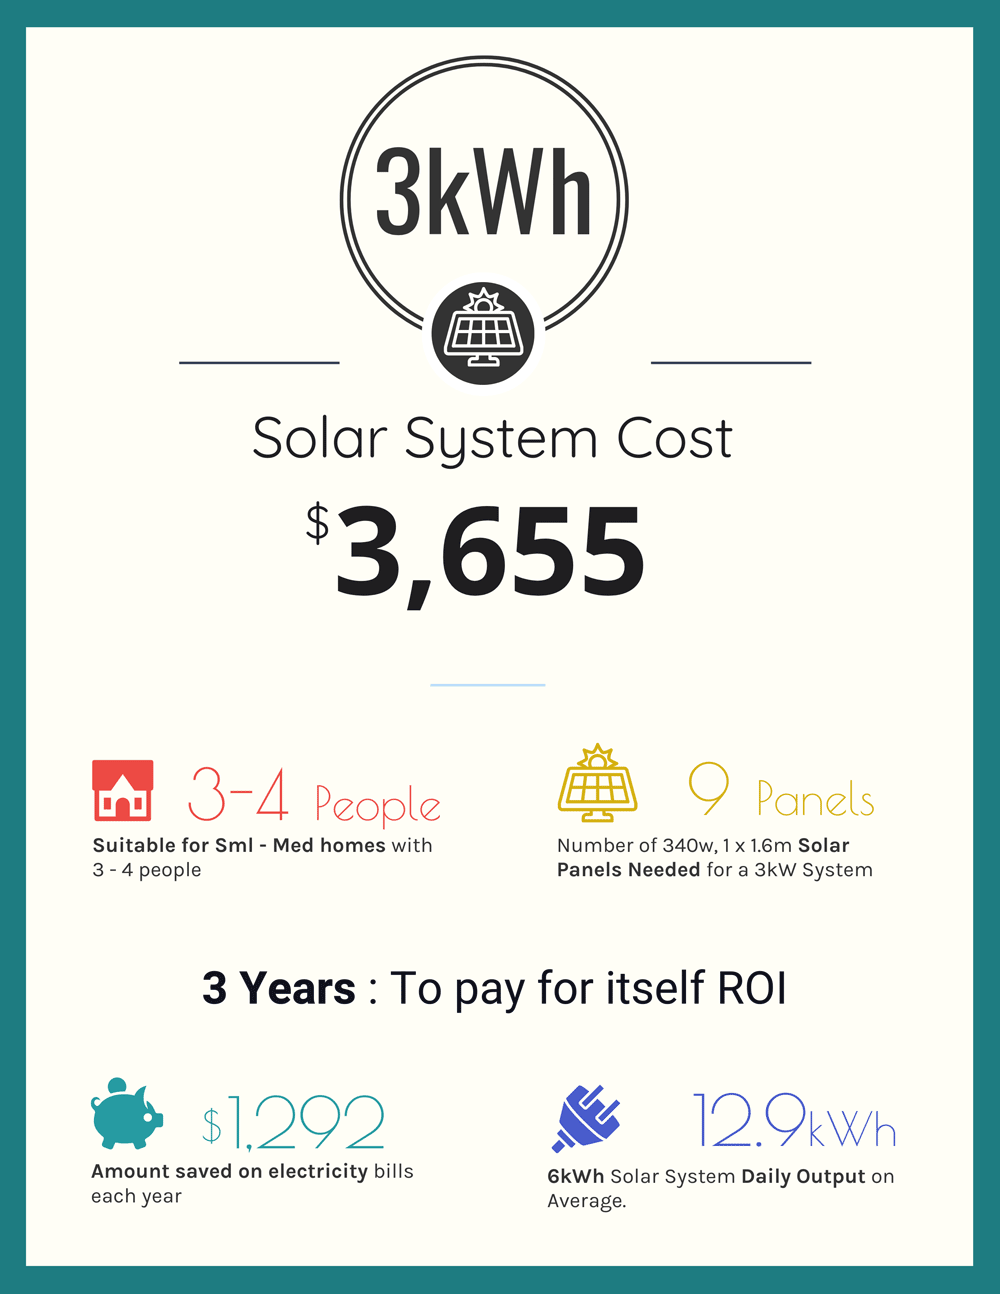 3kWh Solar System Cost Infographic